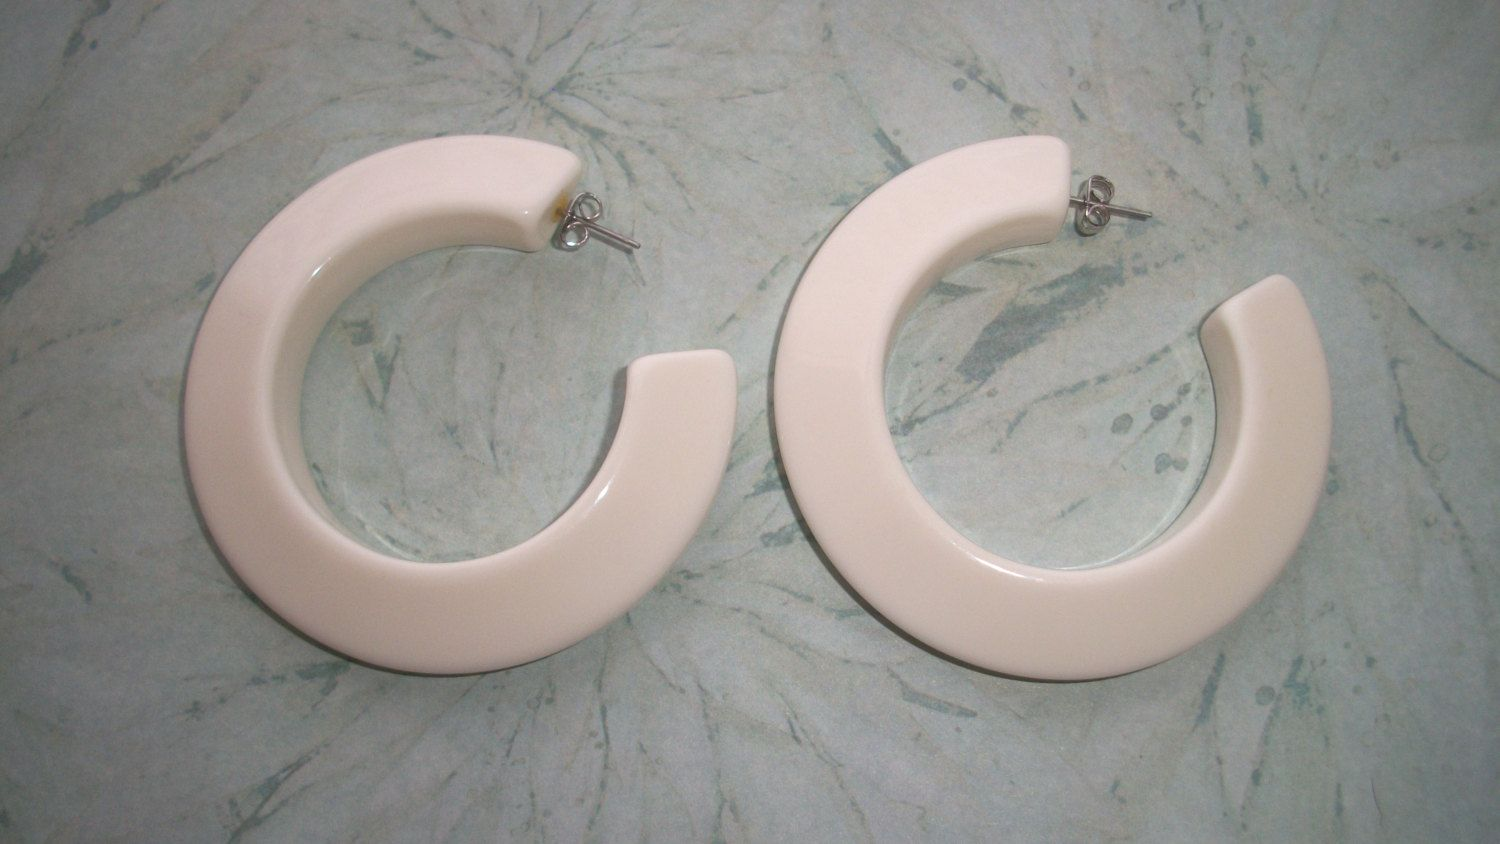 Vintage Large White Lucite Plastic Hoop Earrings Post For Pierced Ears 2 5 Round Pre Owned Costume Jewelry By Phoenixandfox On Etsy